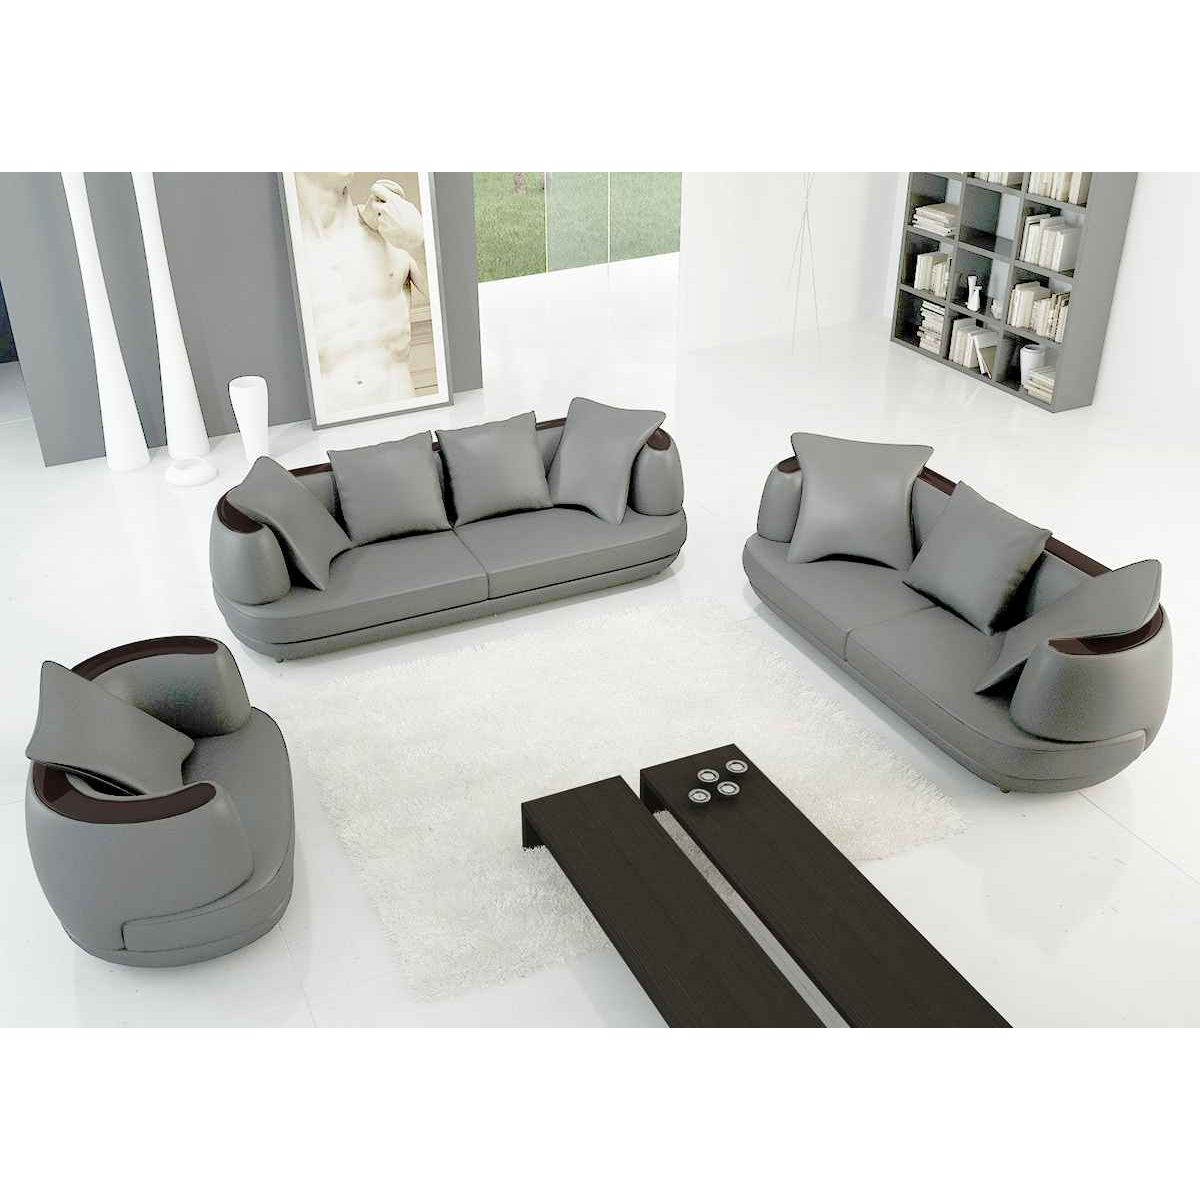 Deco in paris ensemble canape 3 2 1 places en cuir gris for Canape 3 place et 2 place